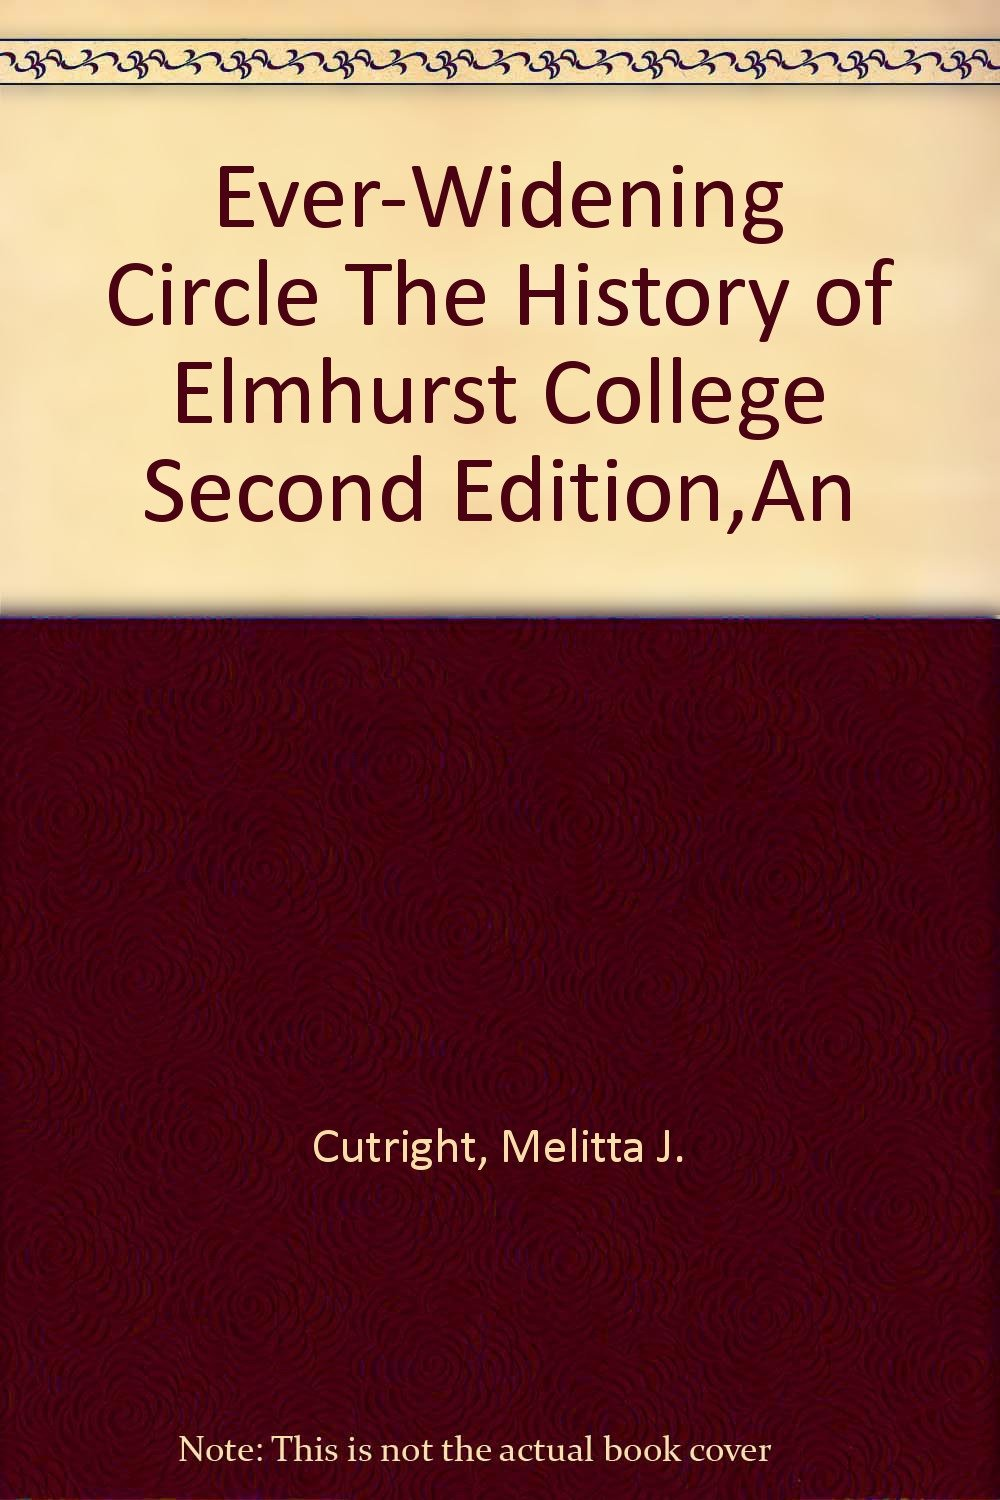 Ever Widening Circle The History Of Elmhurst College Second Edition, An:  Melitta J. Cutright: 9780971512047: Amazon.com: Books